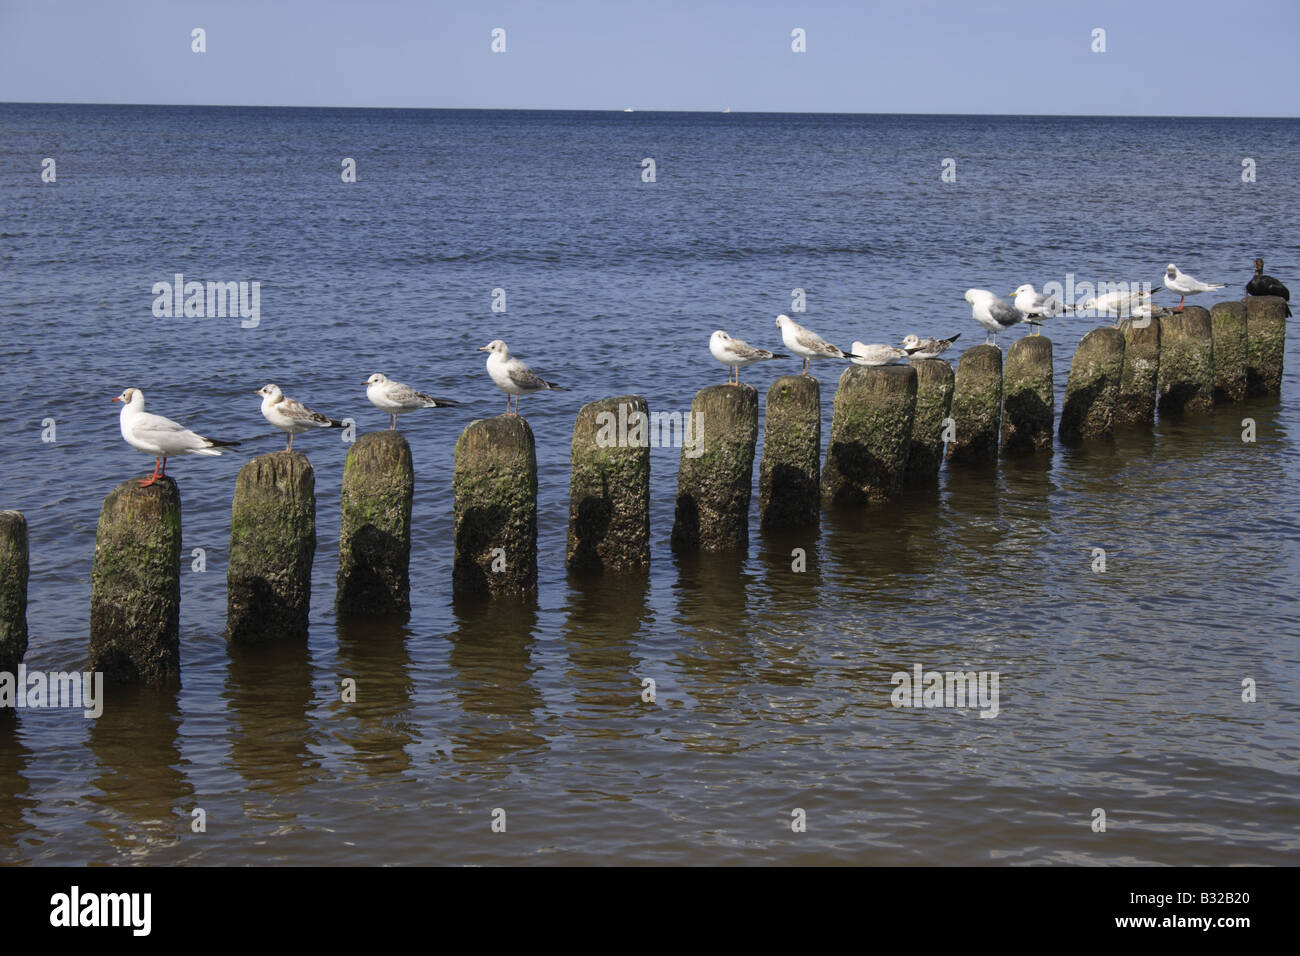 seagulls sitting on groins at the Baltic Sea at Mecklenburg Vorpommern Usedom Island Germany Europe. Photo by Willy - Stock Image